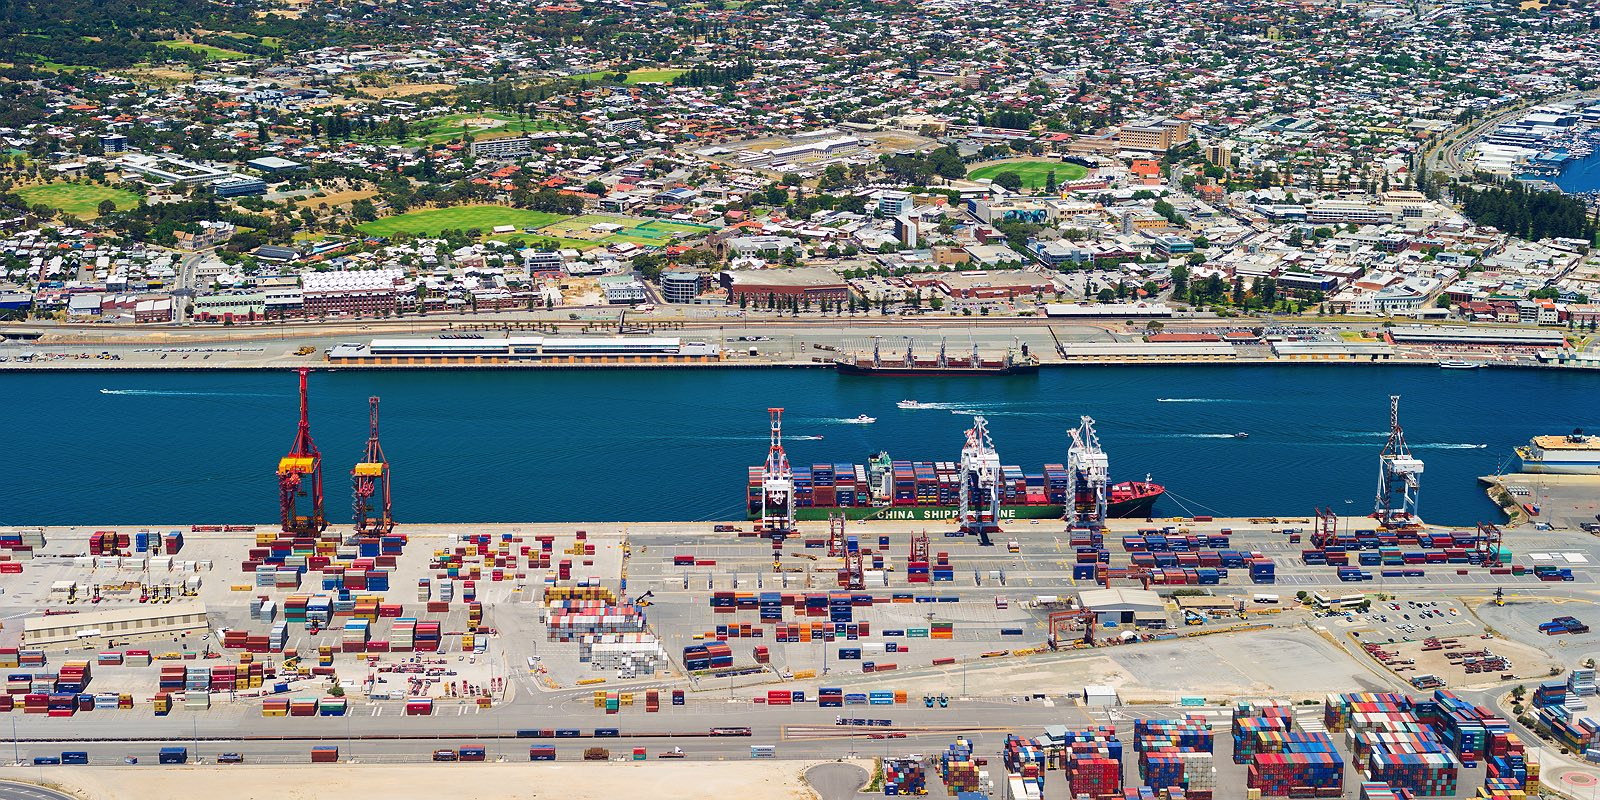 fremantle-port-aerial-sea-containers-cranes